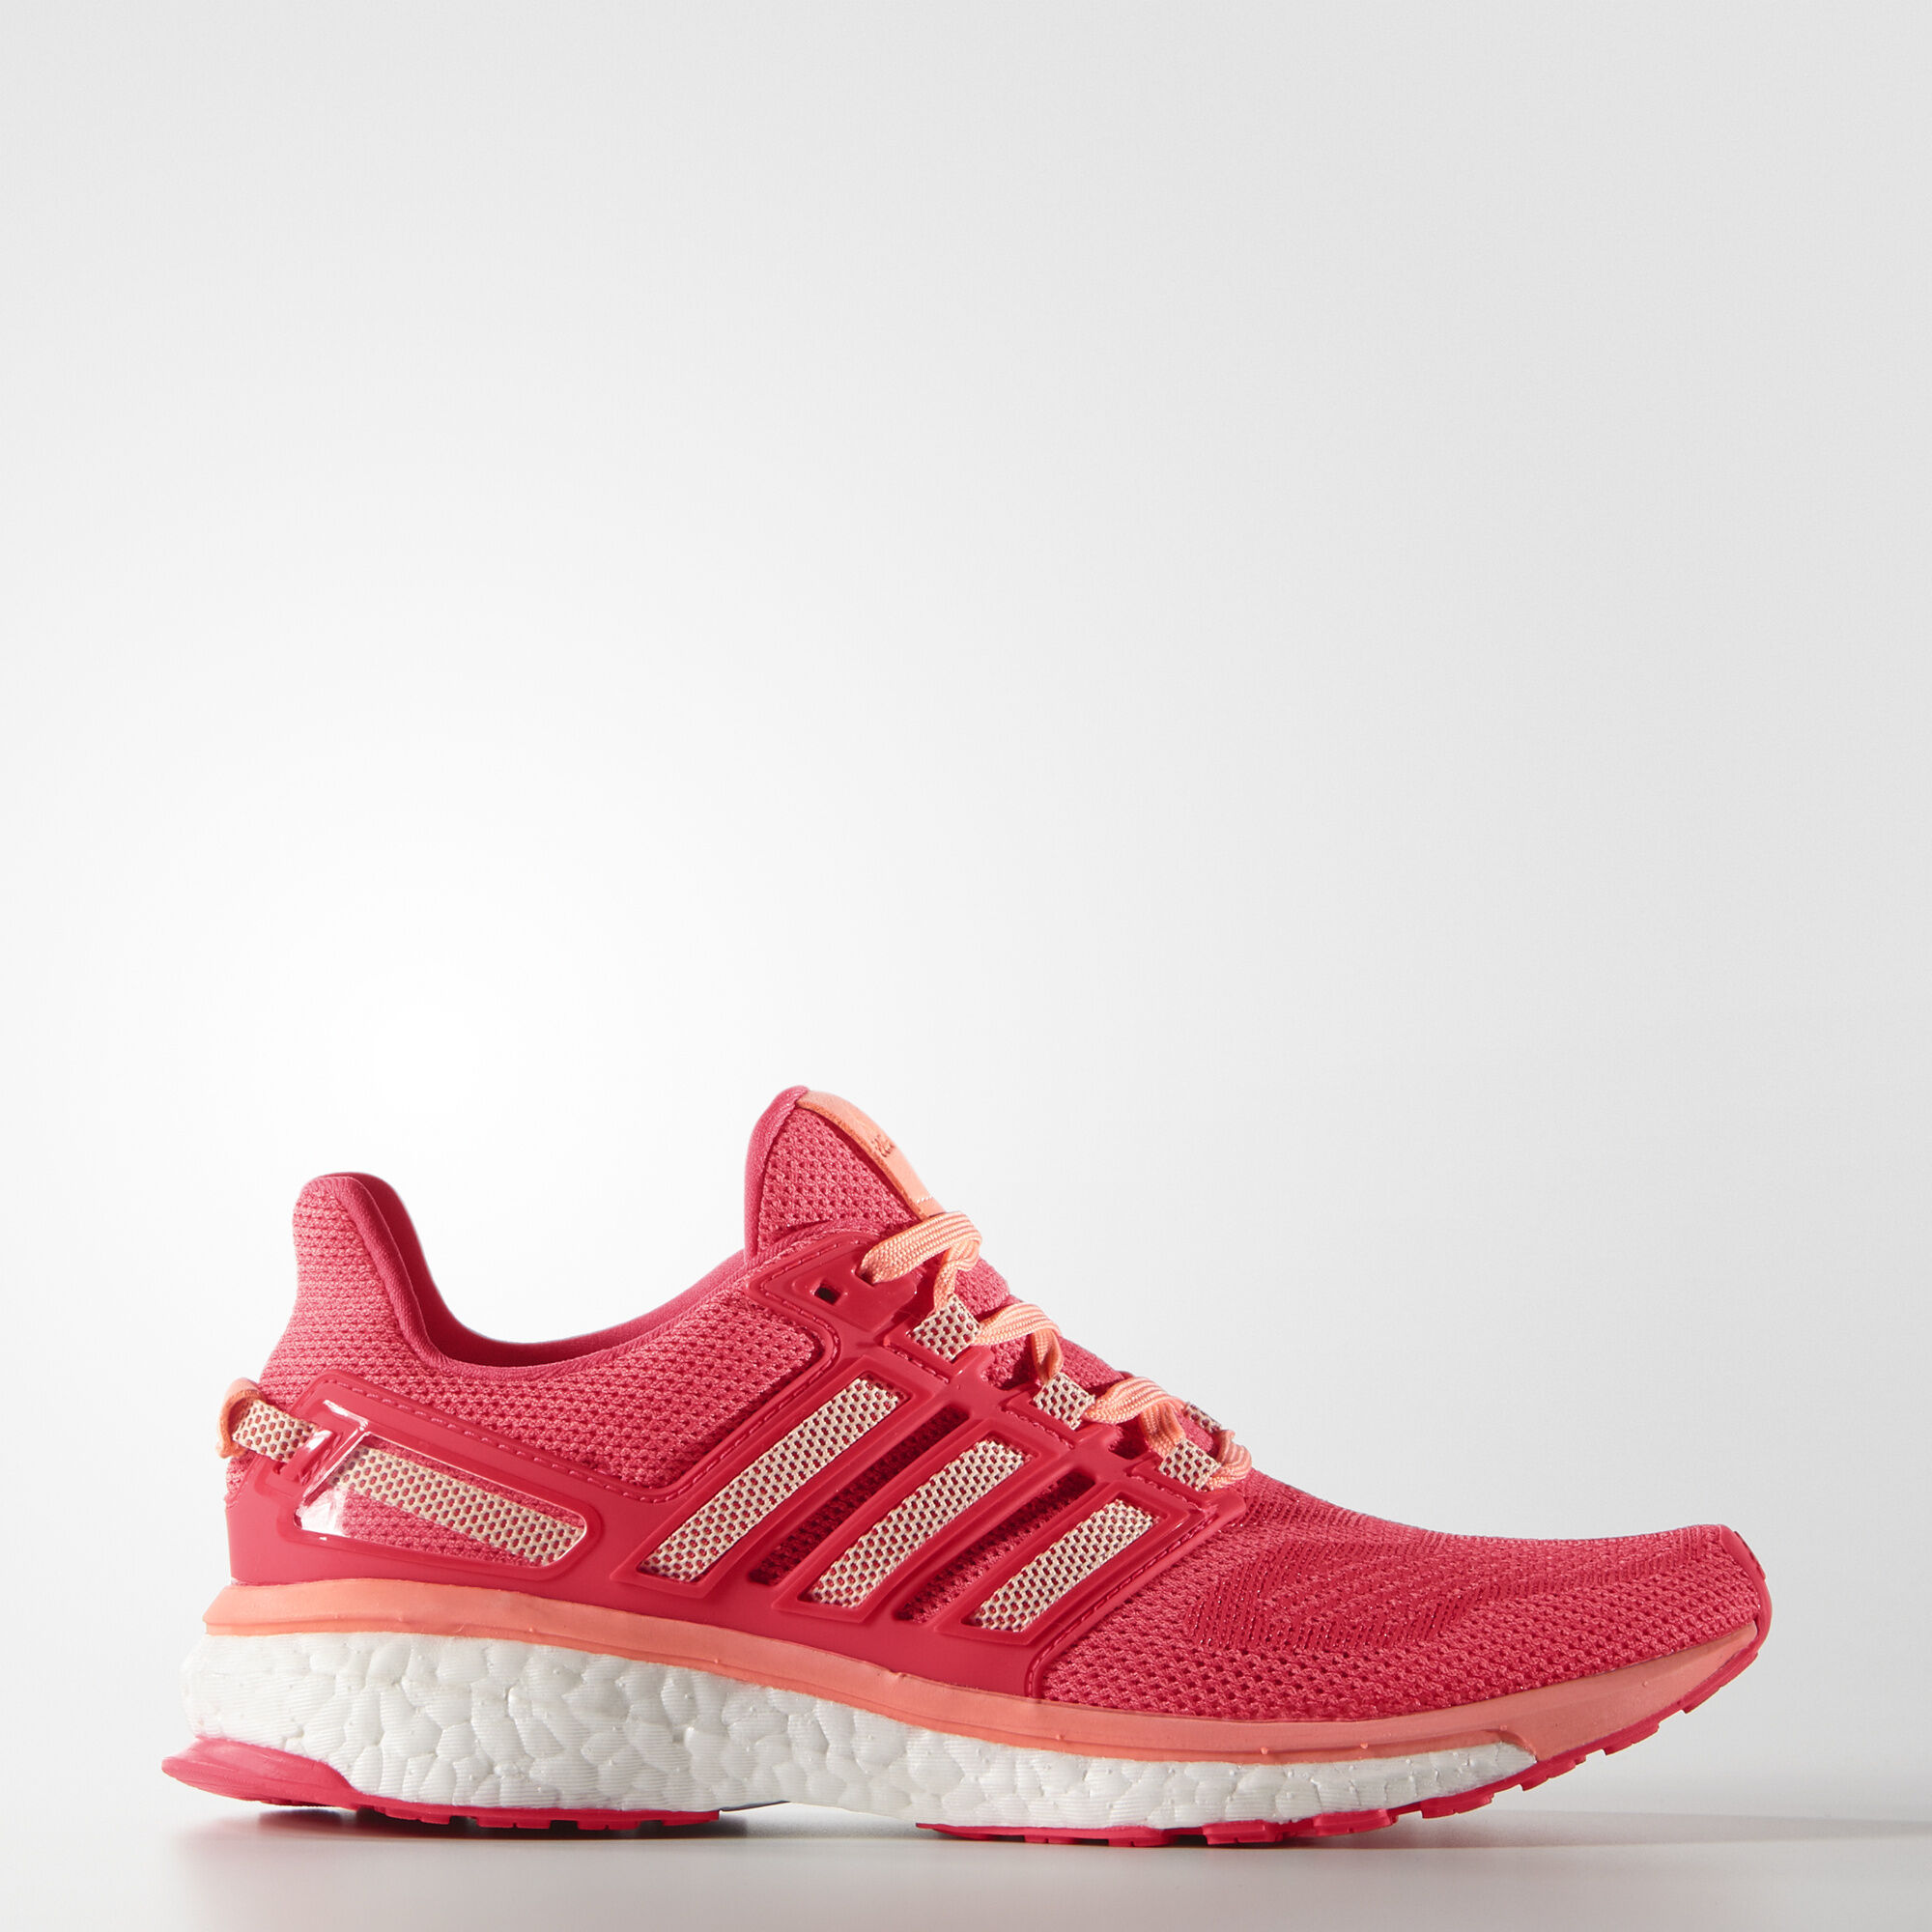 adidas boost mujer argentina